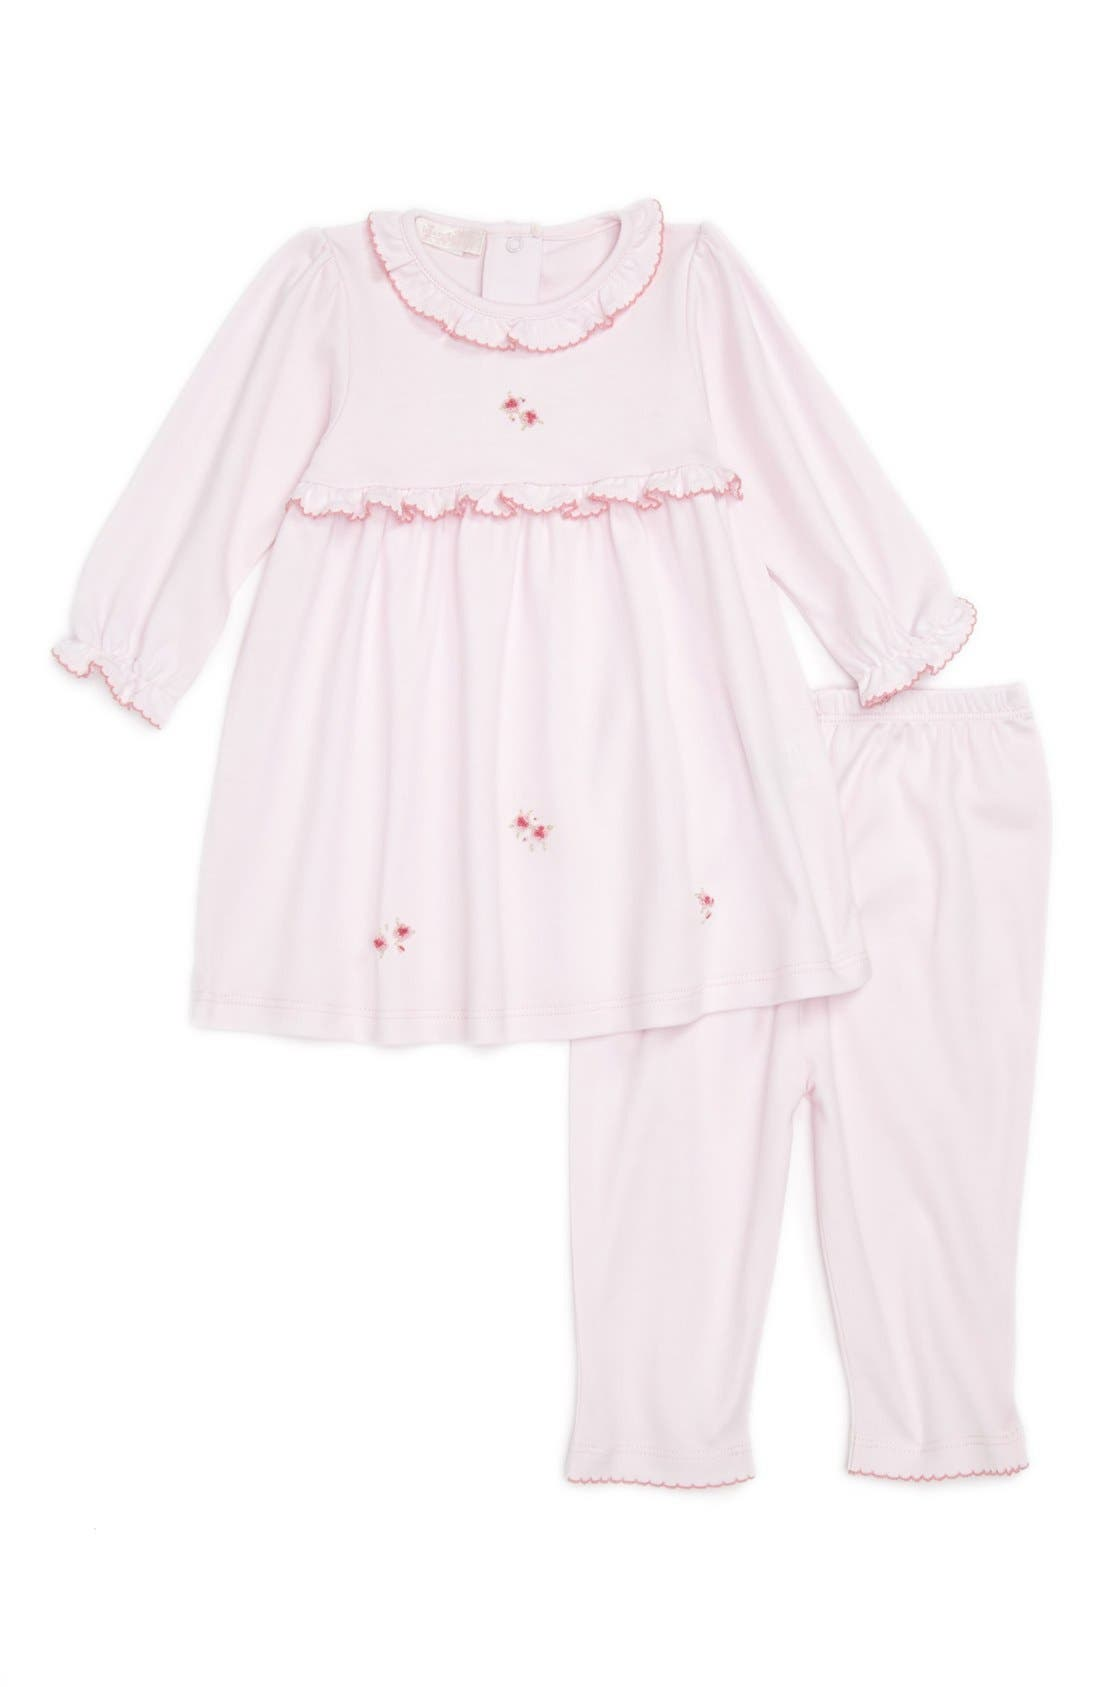 Main Image - Kissy Kissy 'Rose Petal' Dress & Leggings (Baby Girls)